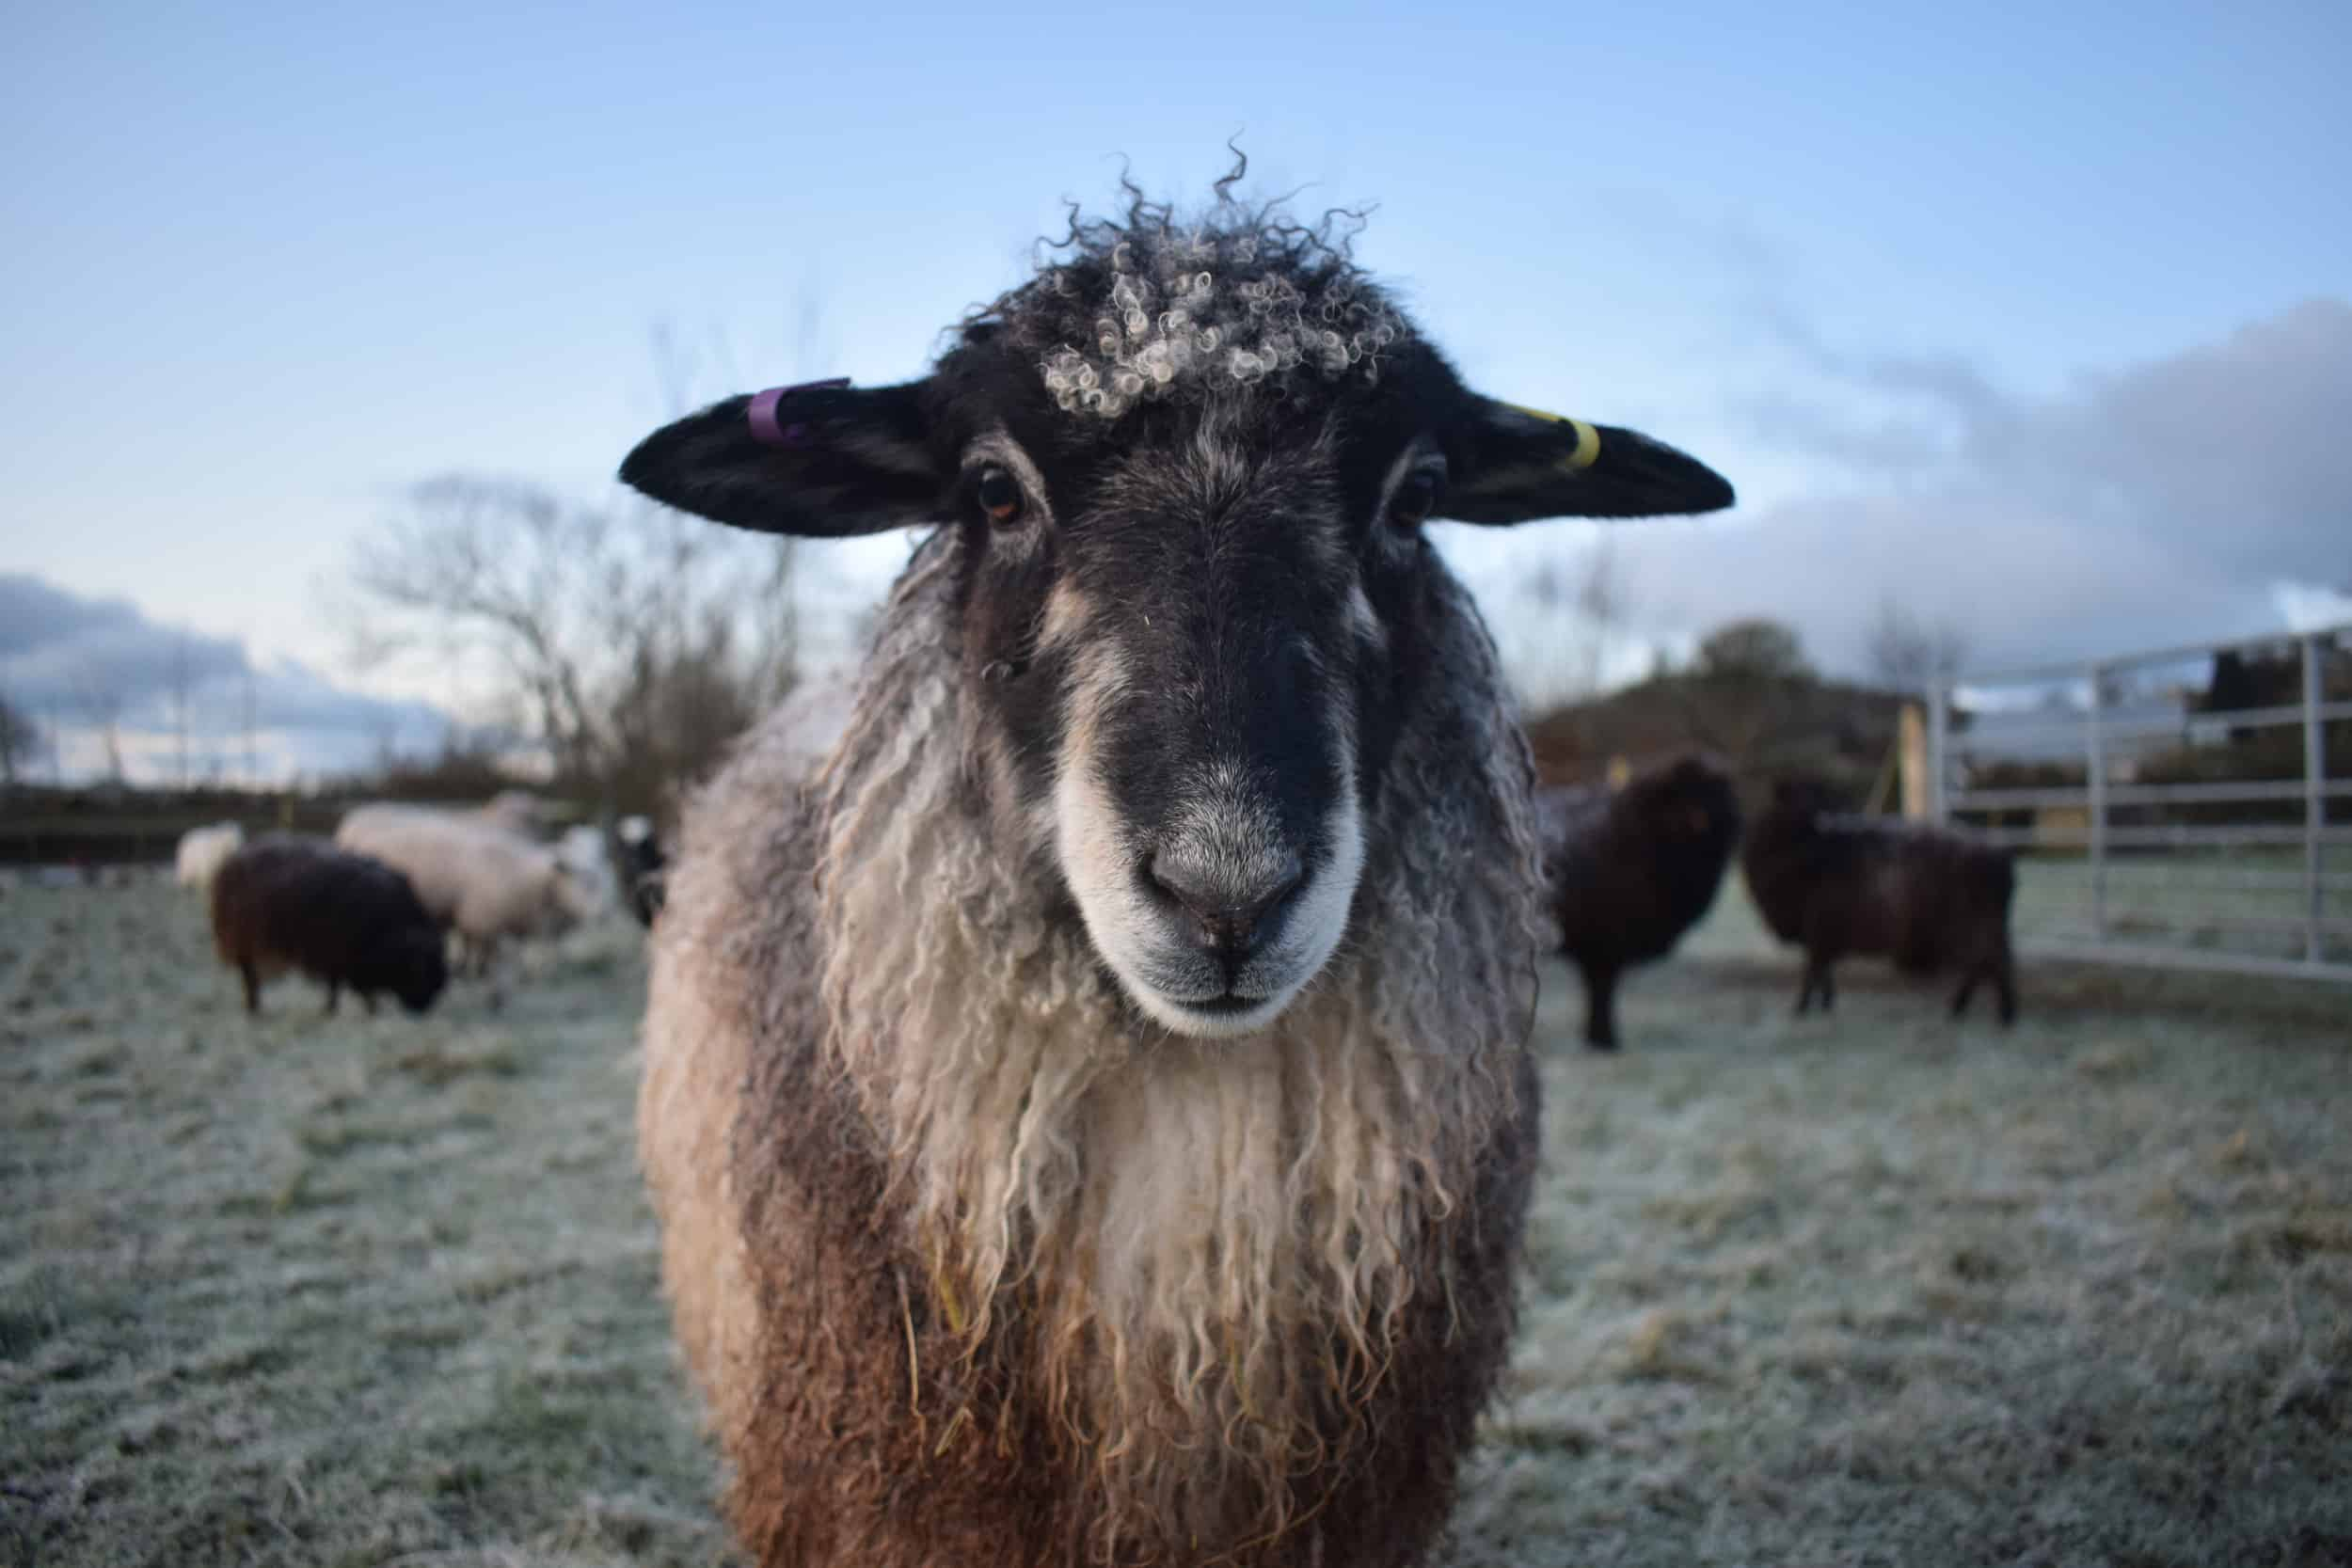 Jemima sheep farm animals coloured leicester longwool gotland sheep shetland ewe lamb kind fibre british wool grey 2